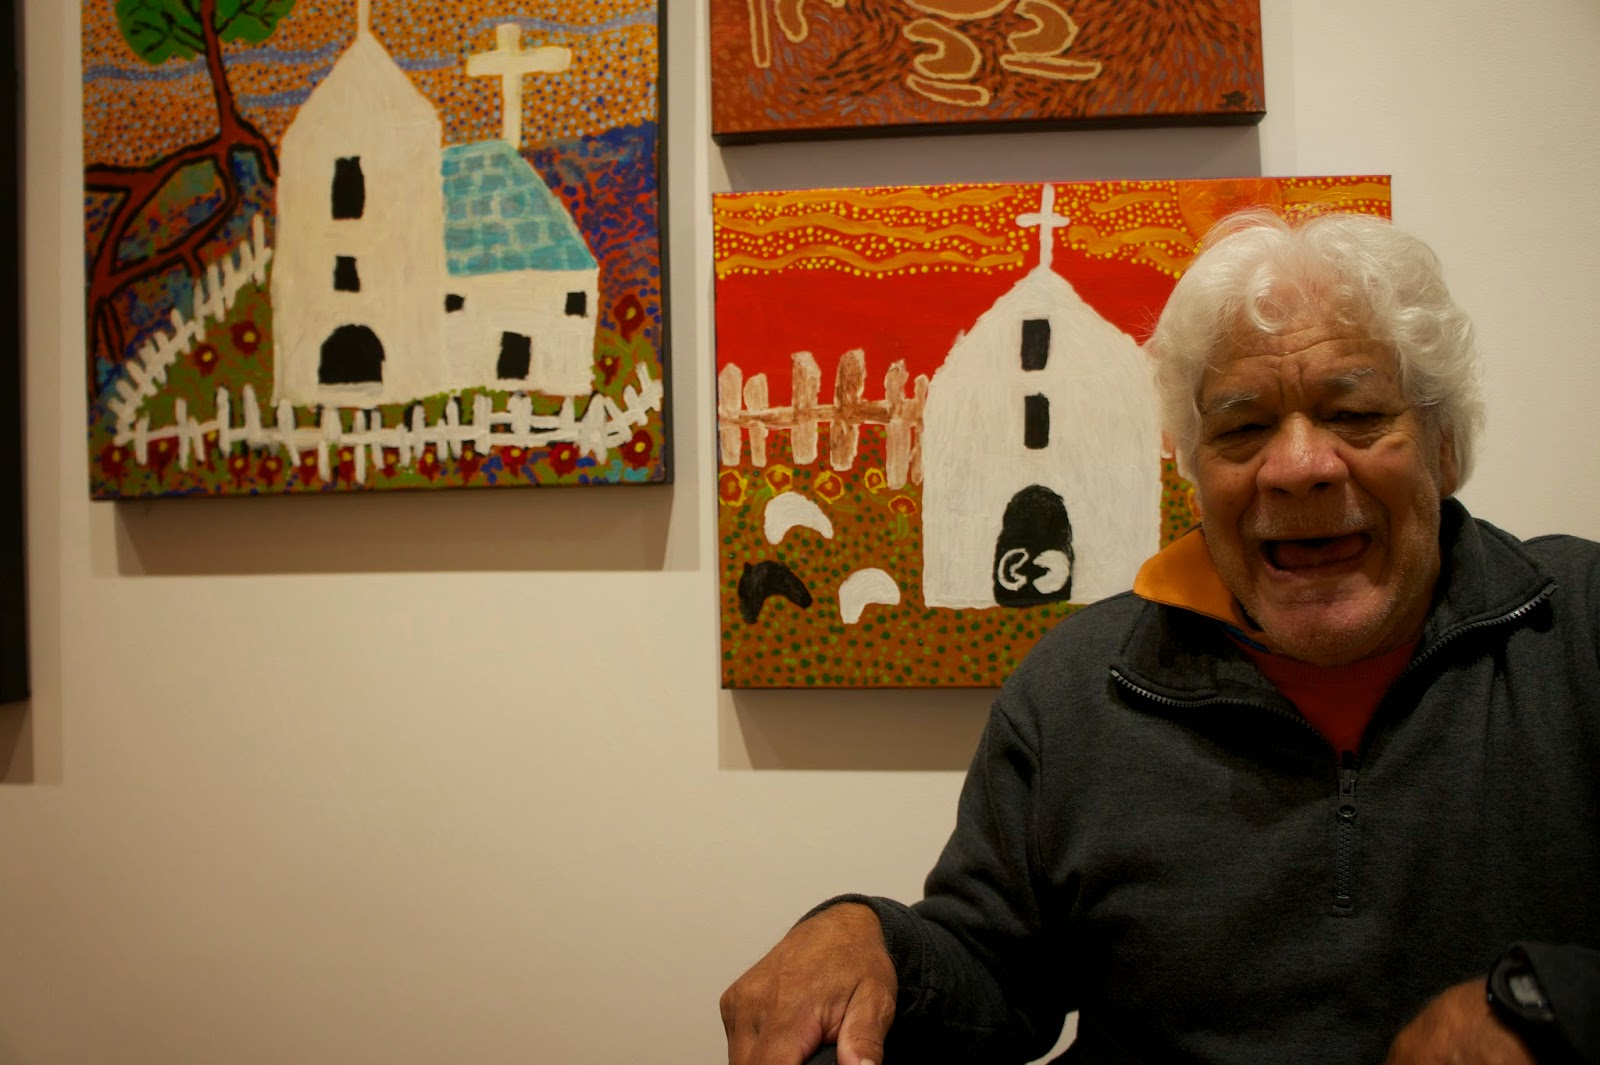 Chats to paul andrew about a new exhibition opening this week at ballinas northern rivers community gallery about artists living with disability and